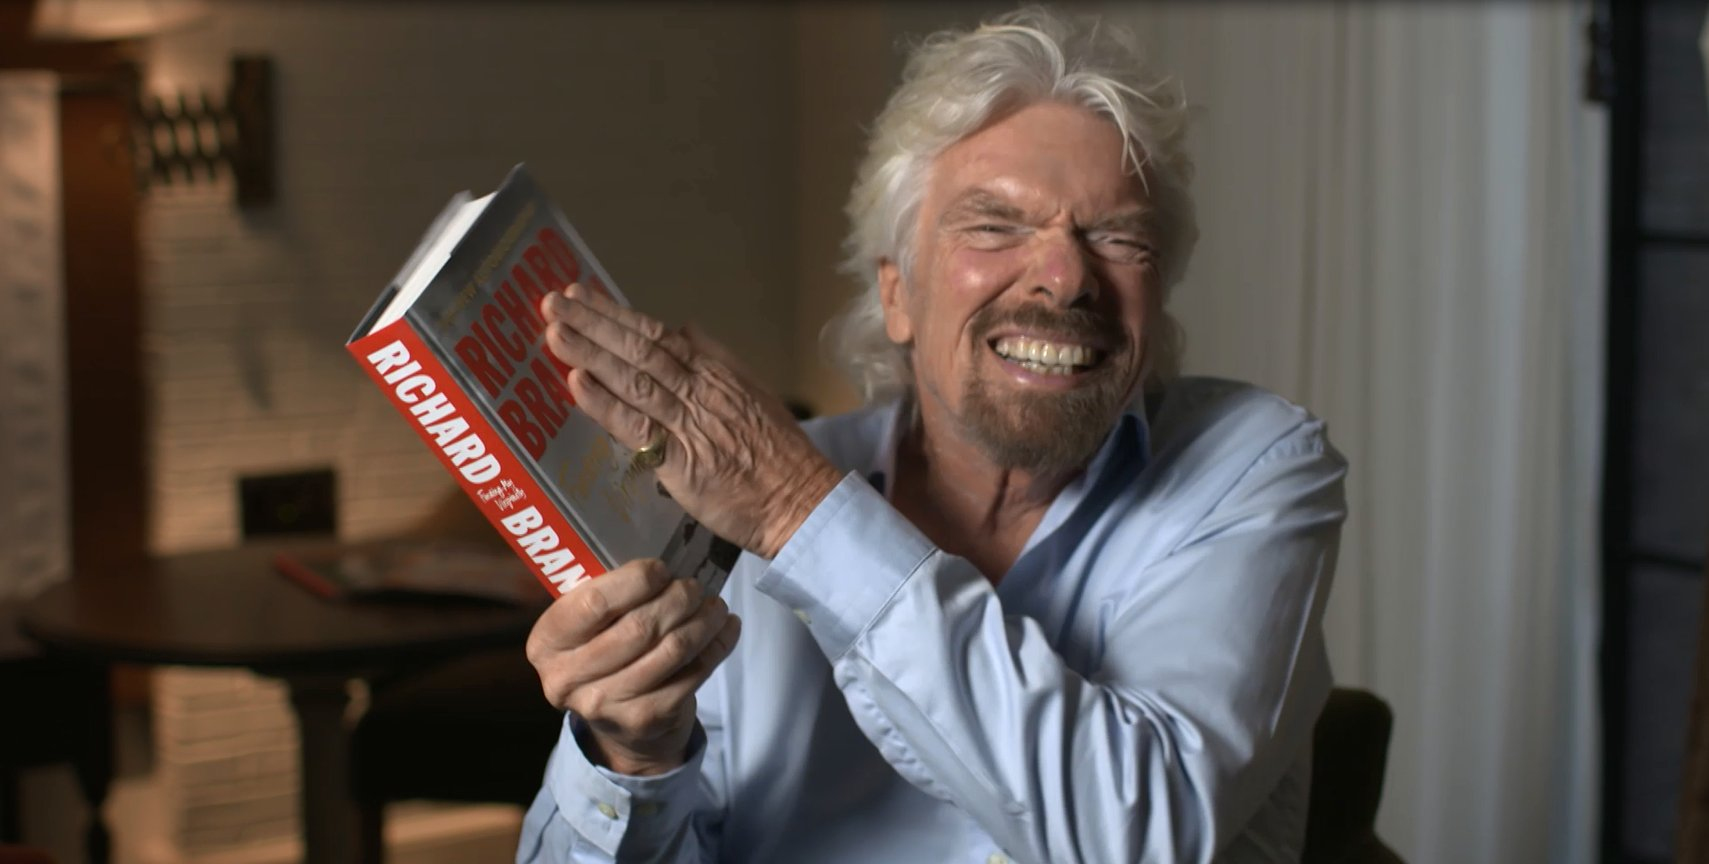 Did you win a copy of #FindingMyVirginity for your nomination? Check the winners here https://t.co/Ahr6lMGuju https://t.co/ttb3AF52Rb